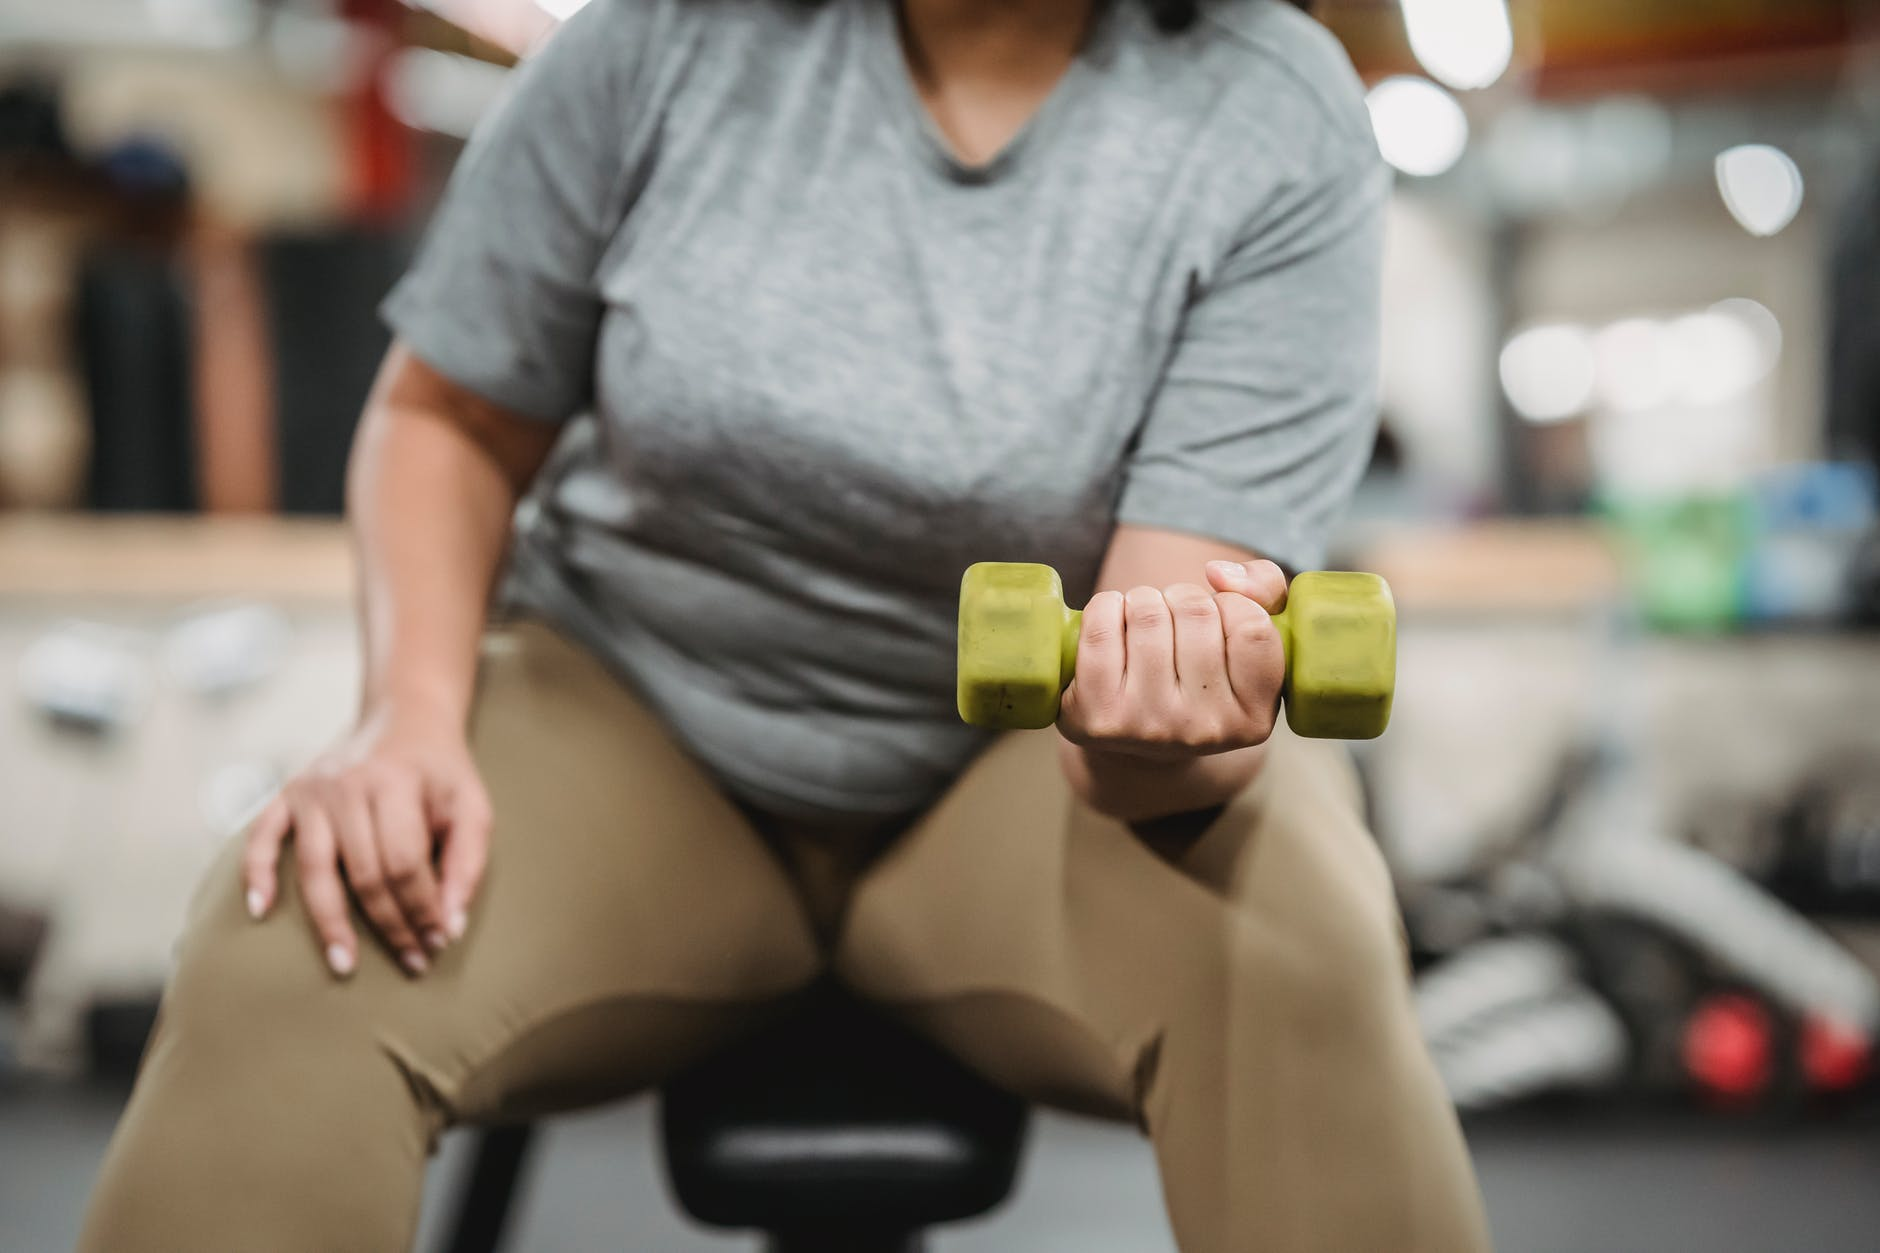 overweight person lifting a handweight for health